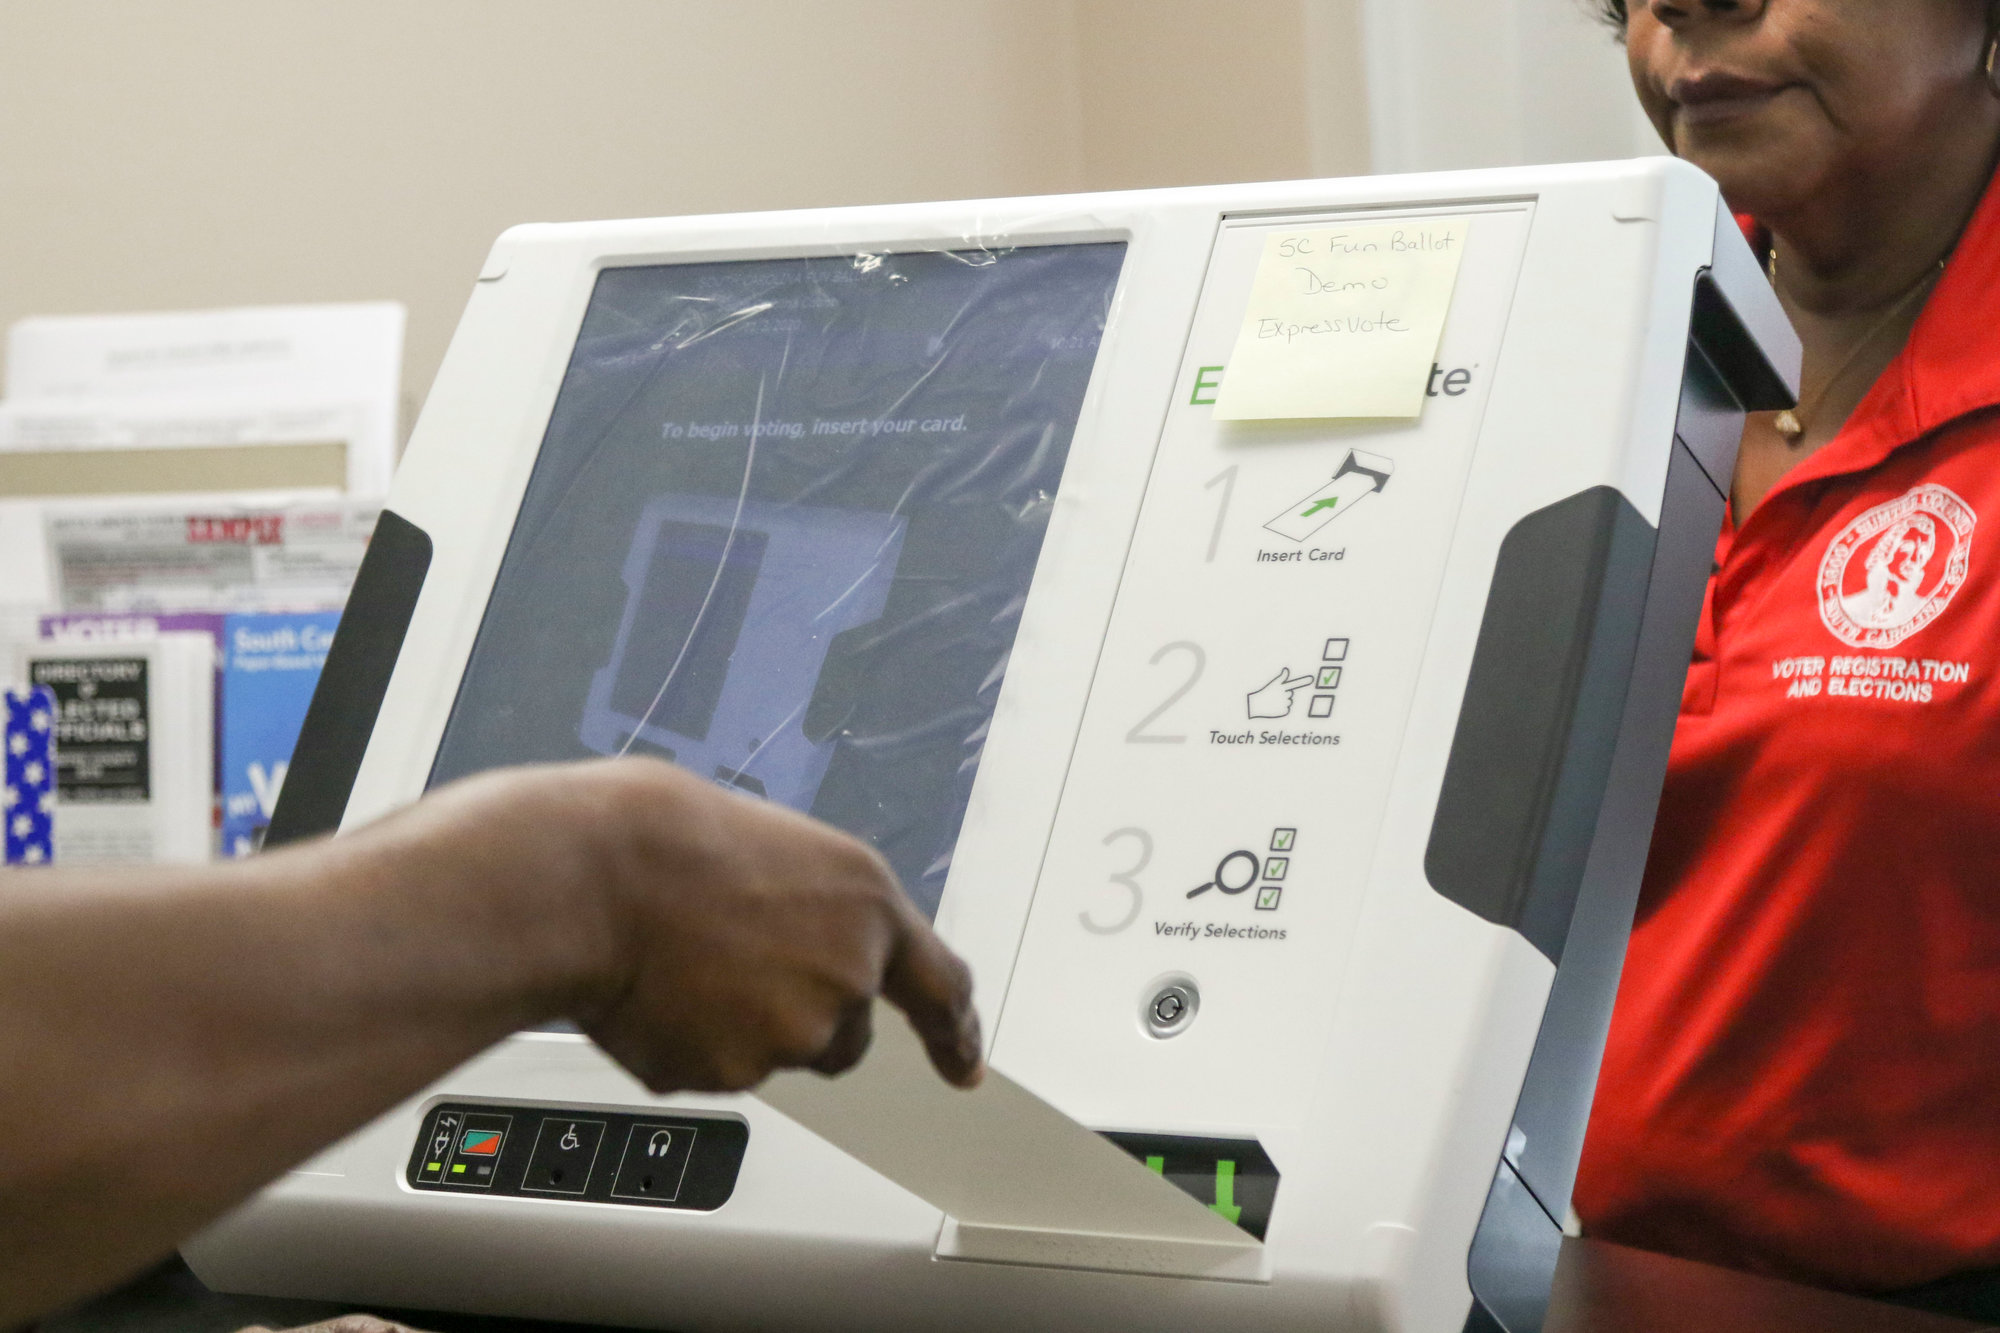 A blank ballot card is inserted. Once a voter makes selections on the touchscreen, the card is printed with those choices. Then, the card is inserted into a second machine to record the votes electronically and securely retain the paper copy for verification.